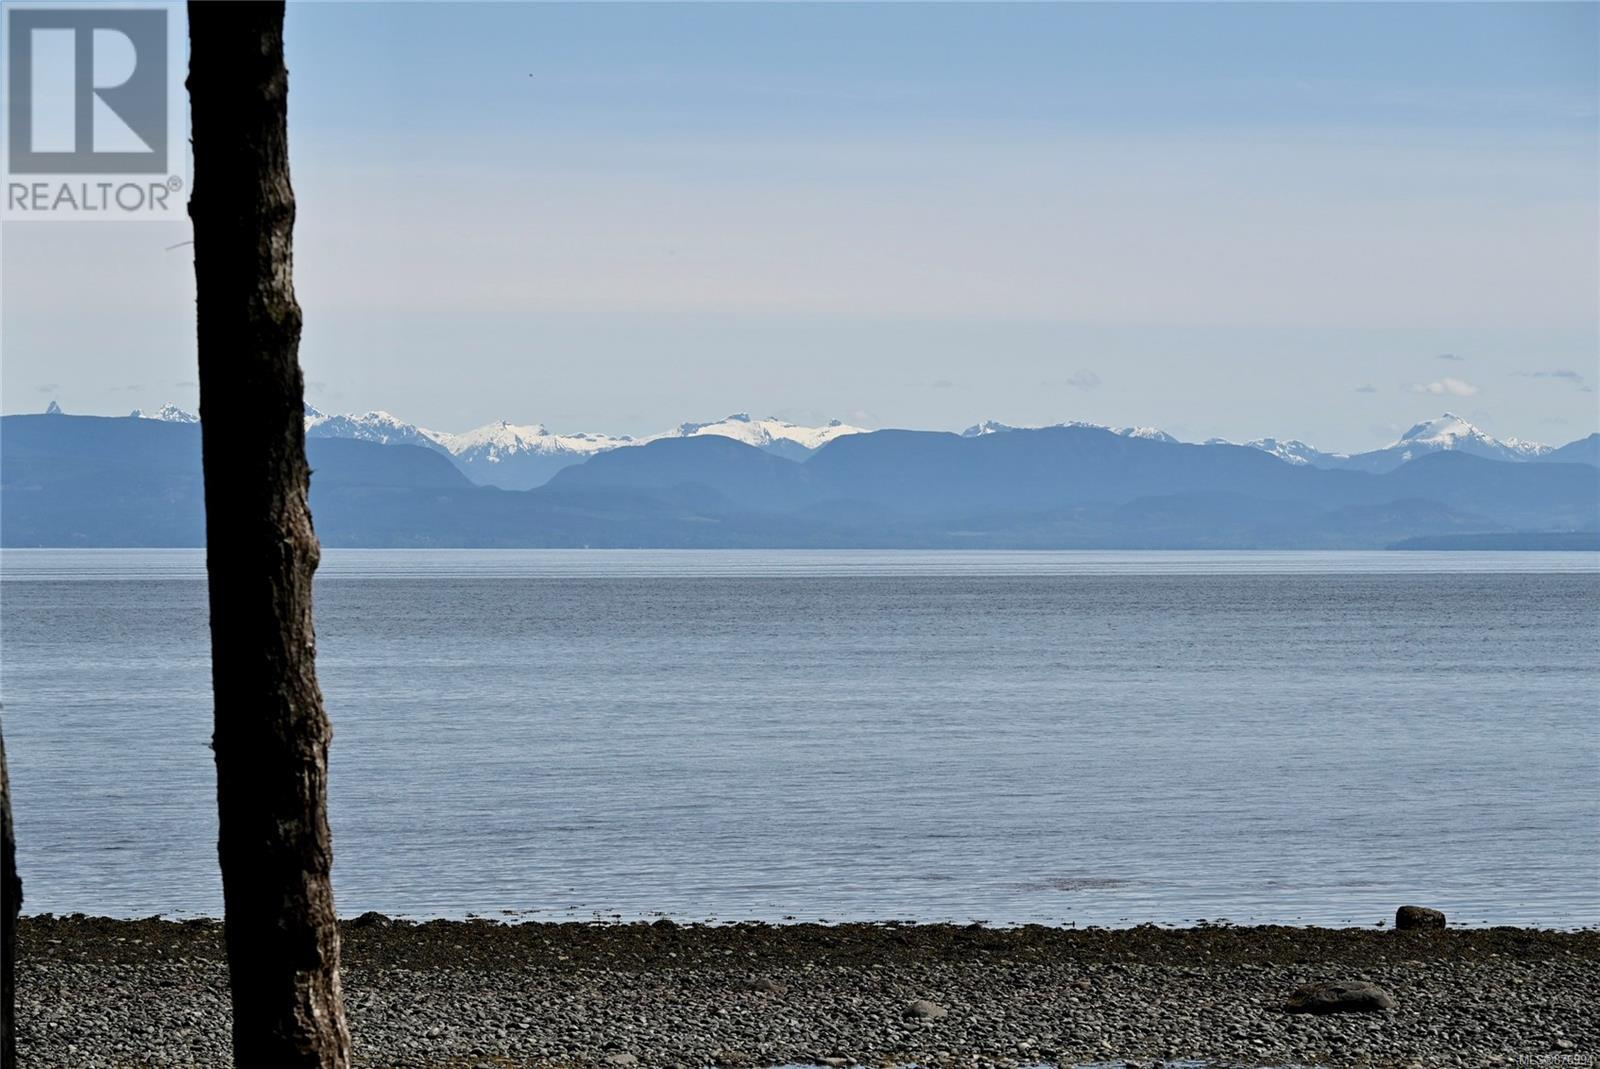 MLS® #876994 - Courtenay For sale Image #11